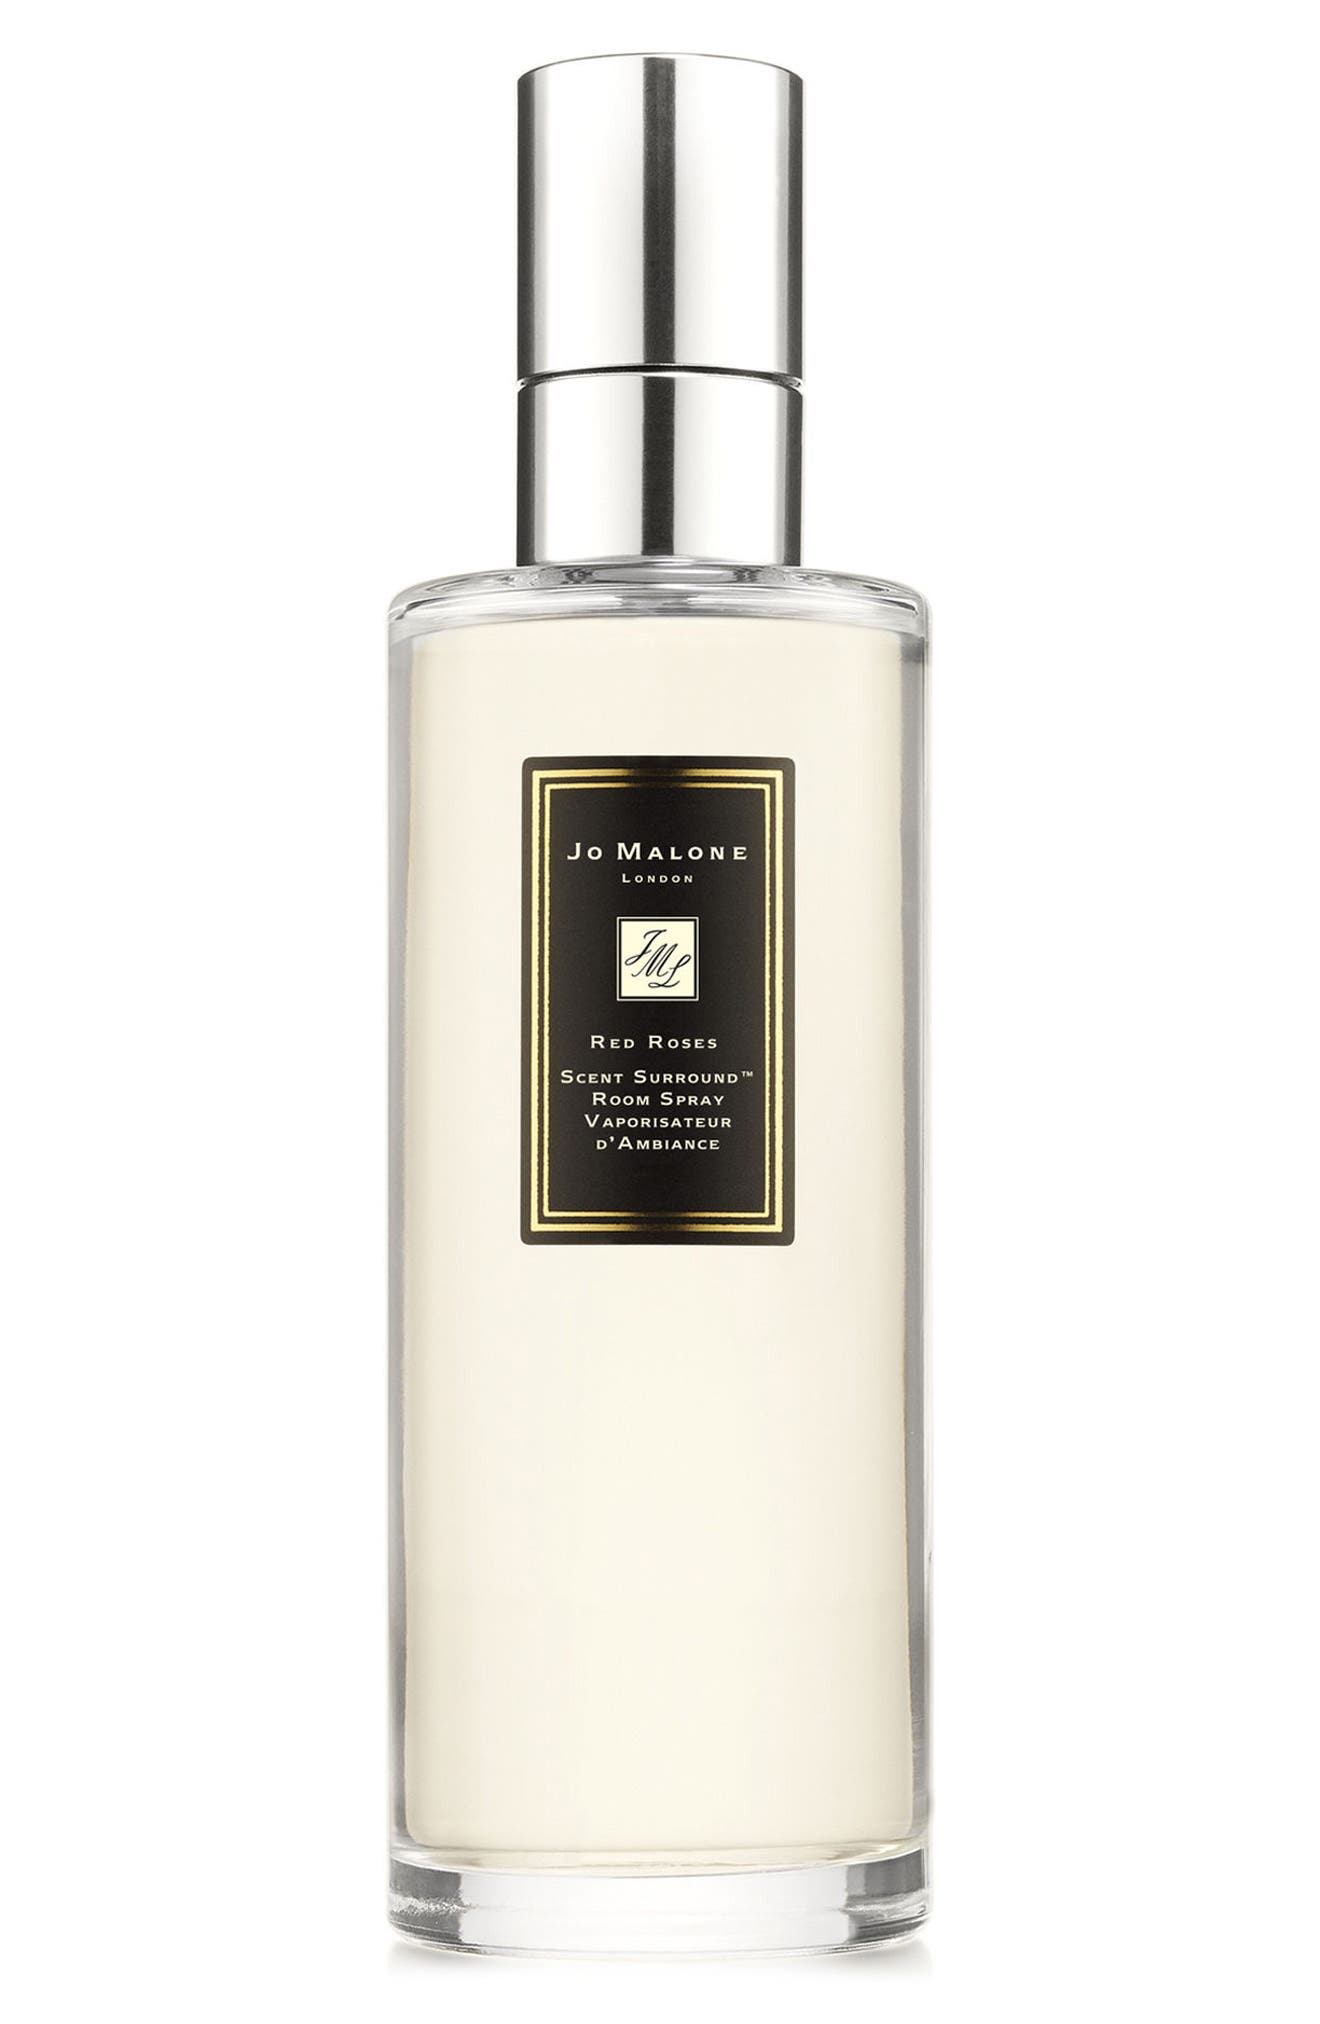 Jo Malone™ Red Roses Scent Surround™ Room Spray